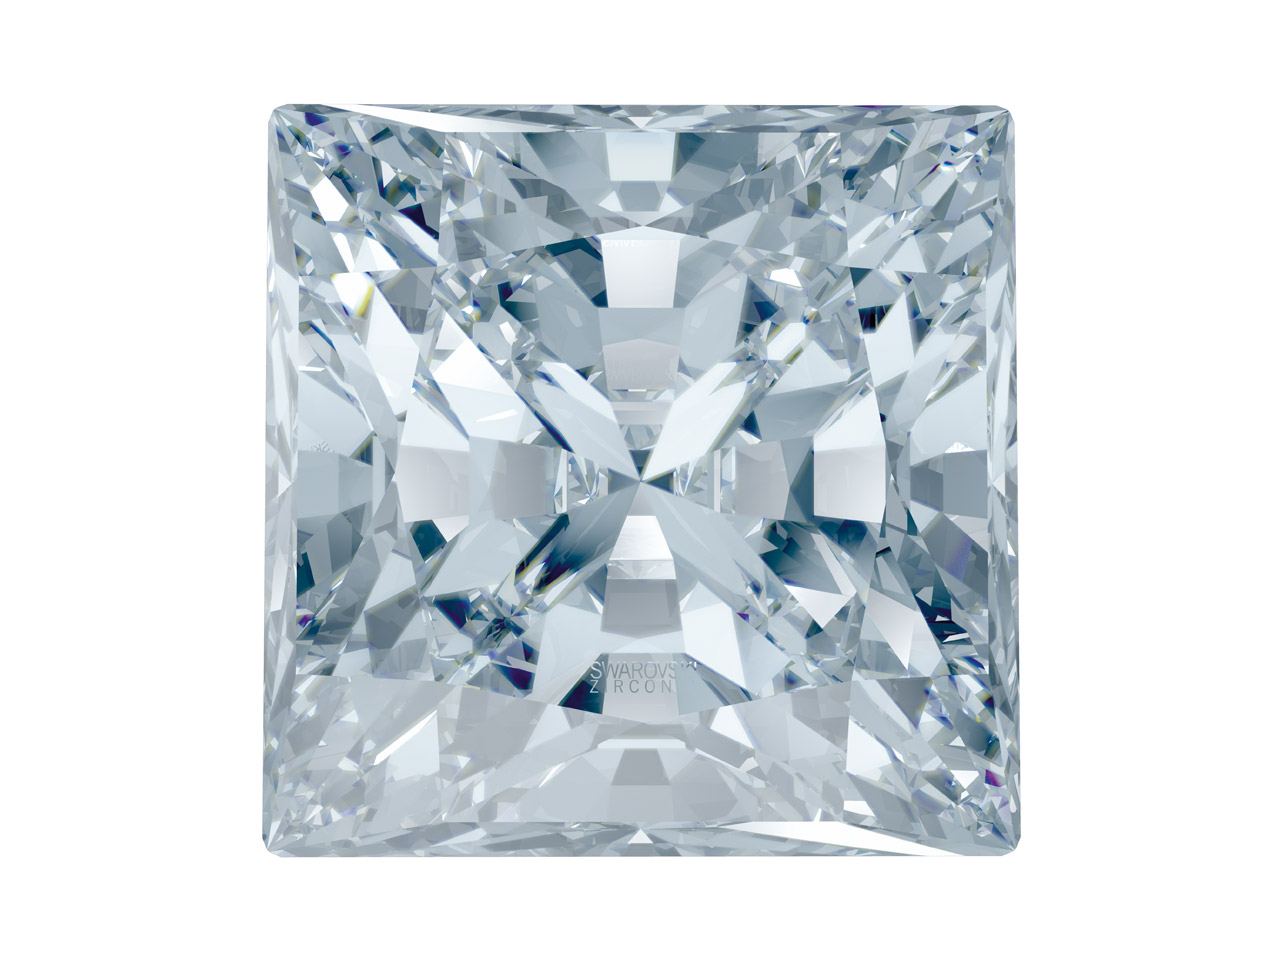 Swarovski Zirconia Square Princess Pure Brilliance Cut 4x4mm White